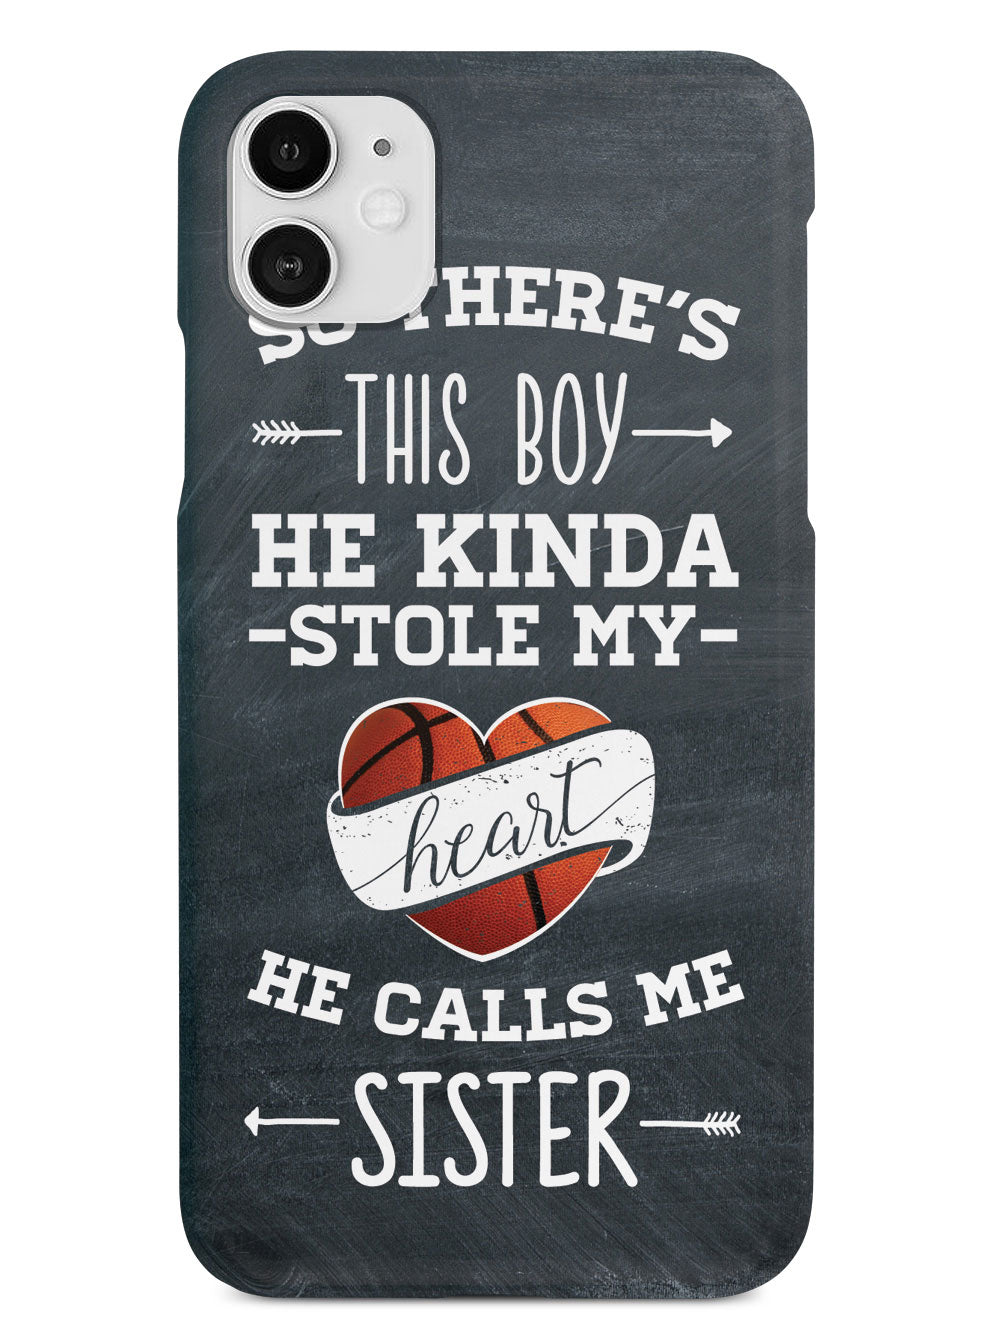 So there's this Boy - Basketball Player - Sister Case